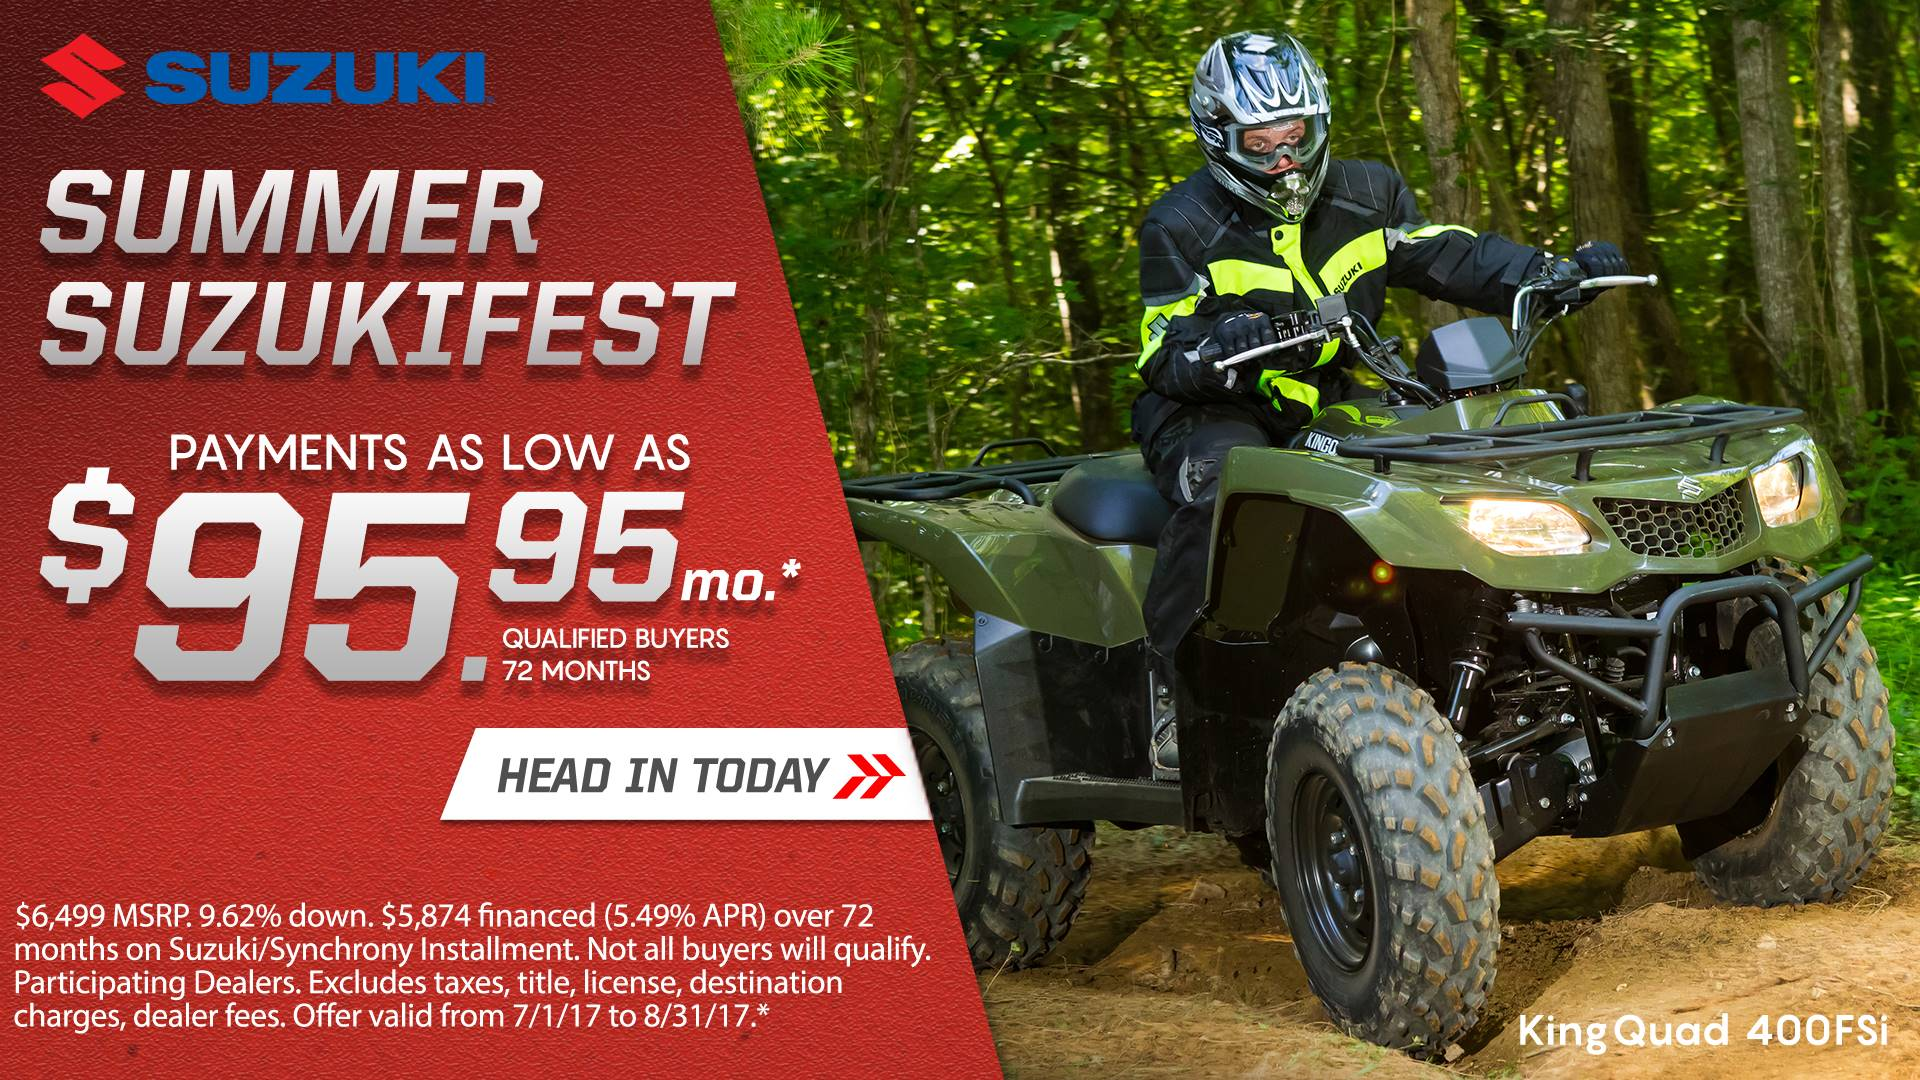 Suzuki Motor of America Inc. Suzuki Suzukifest ATV Financing as Low as 0% APR for 36 Months or Customer Cash Offer